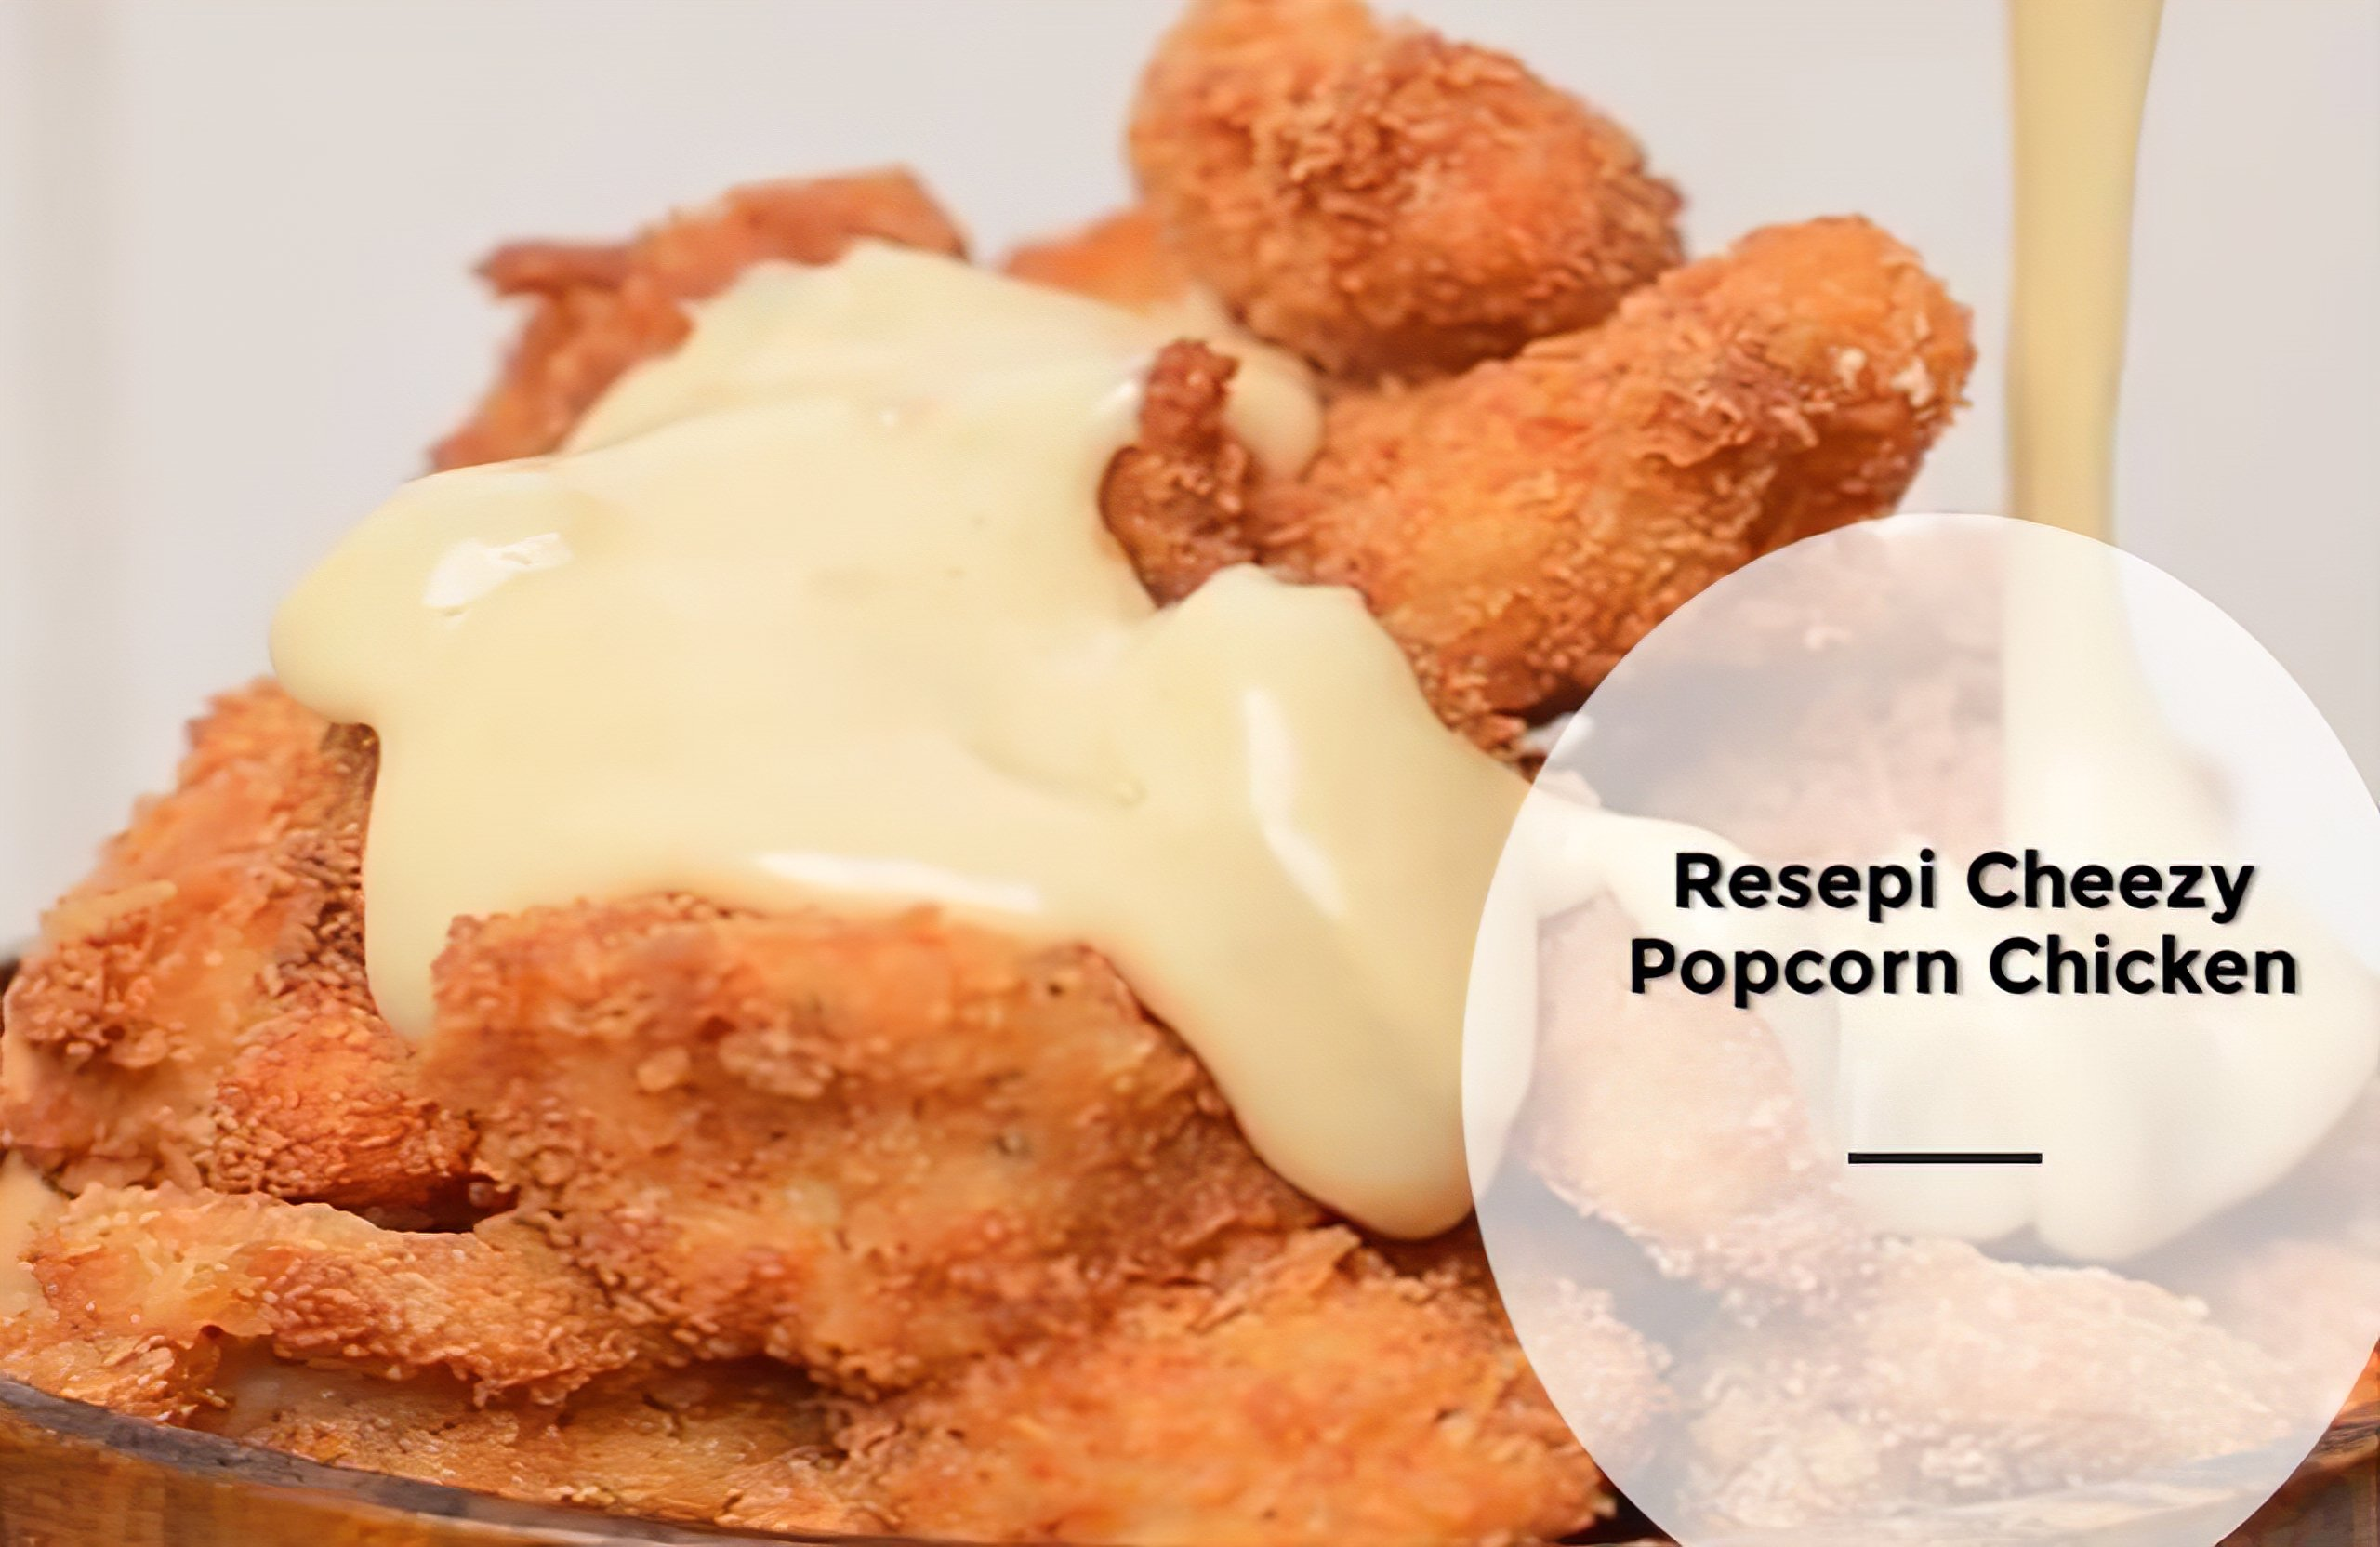 Resepi Cheezy Popcorn Chicken